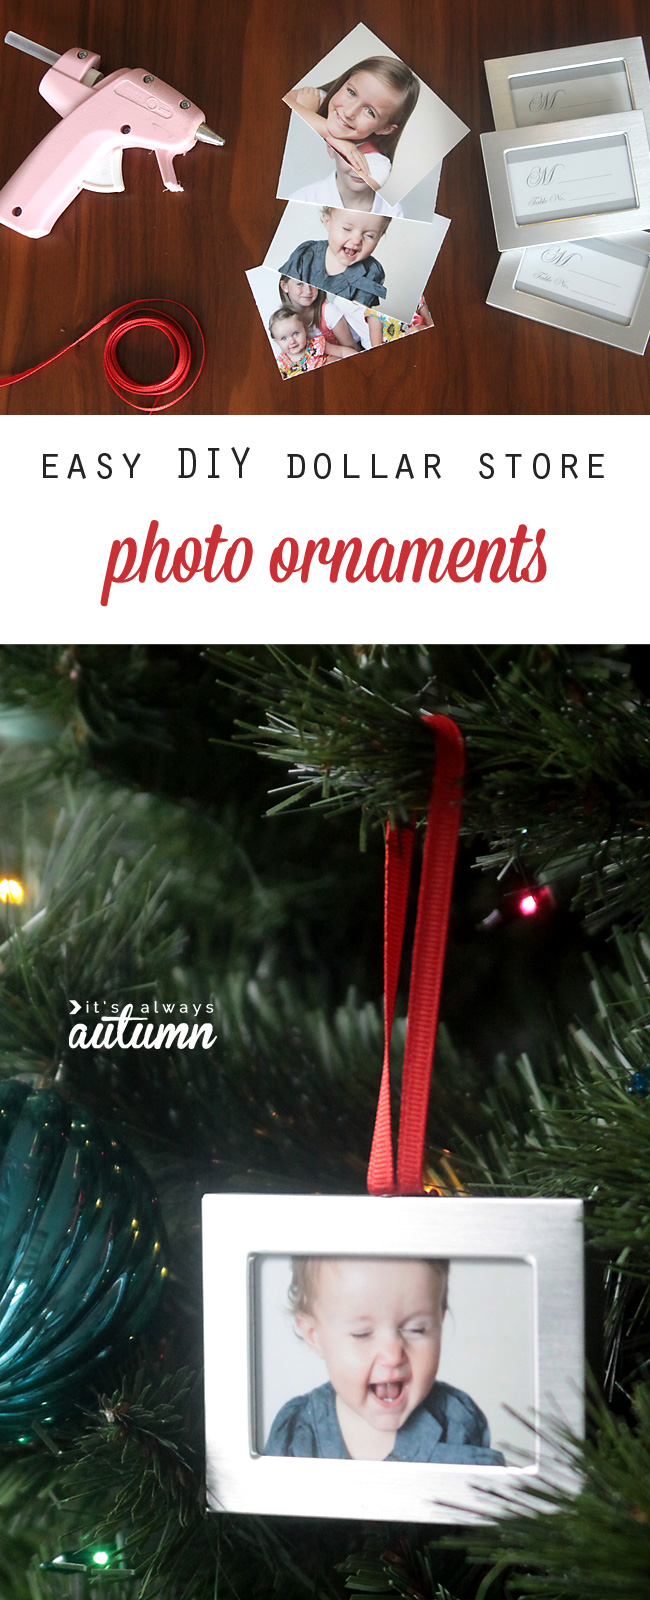 DIY photo ornaments hanging on a Christmas tree